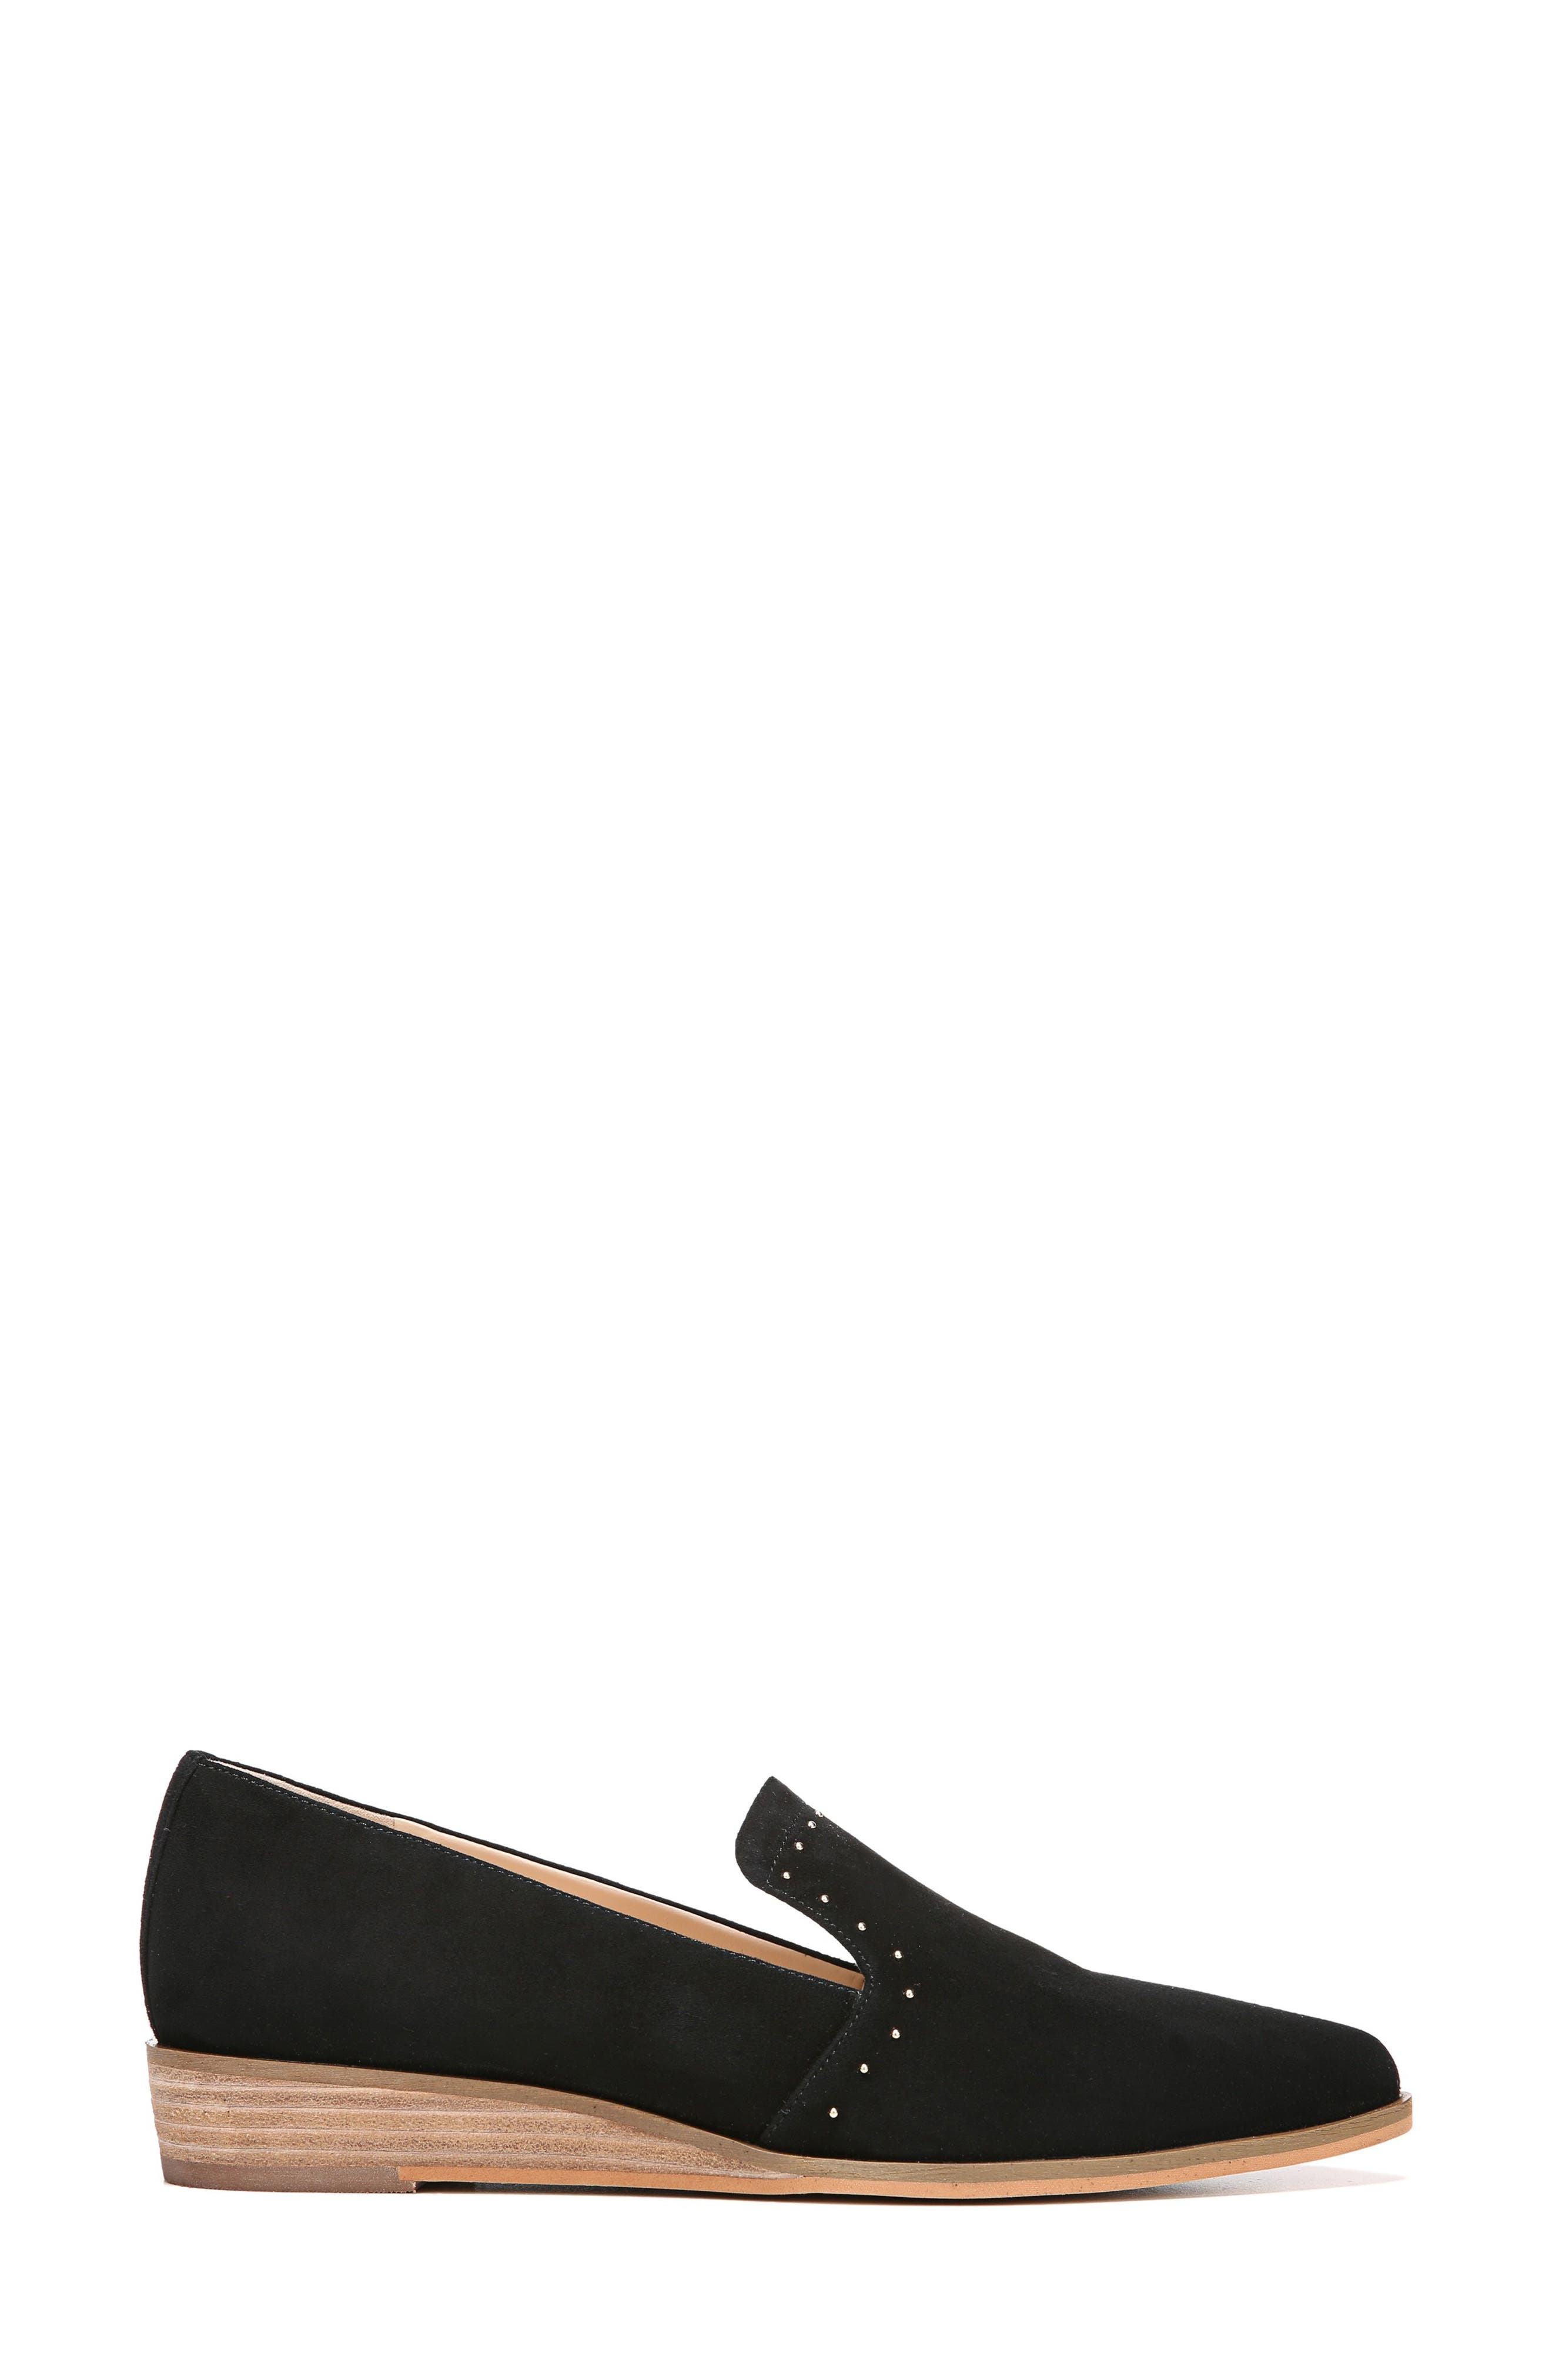 Keane Loafer Wedge,                             Alternate thumbnail 3, color,                             001